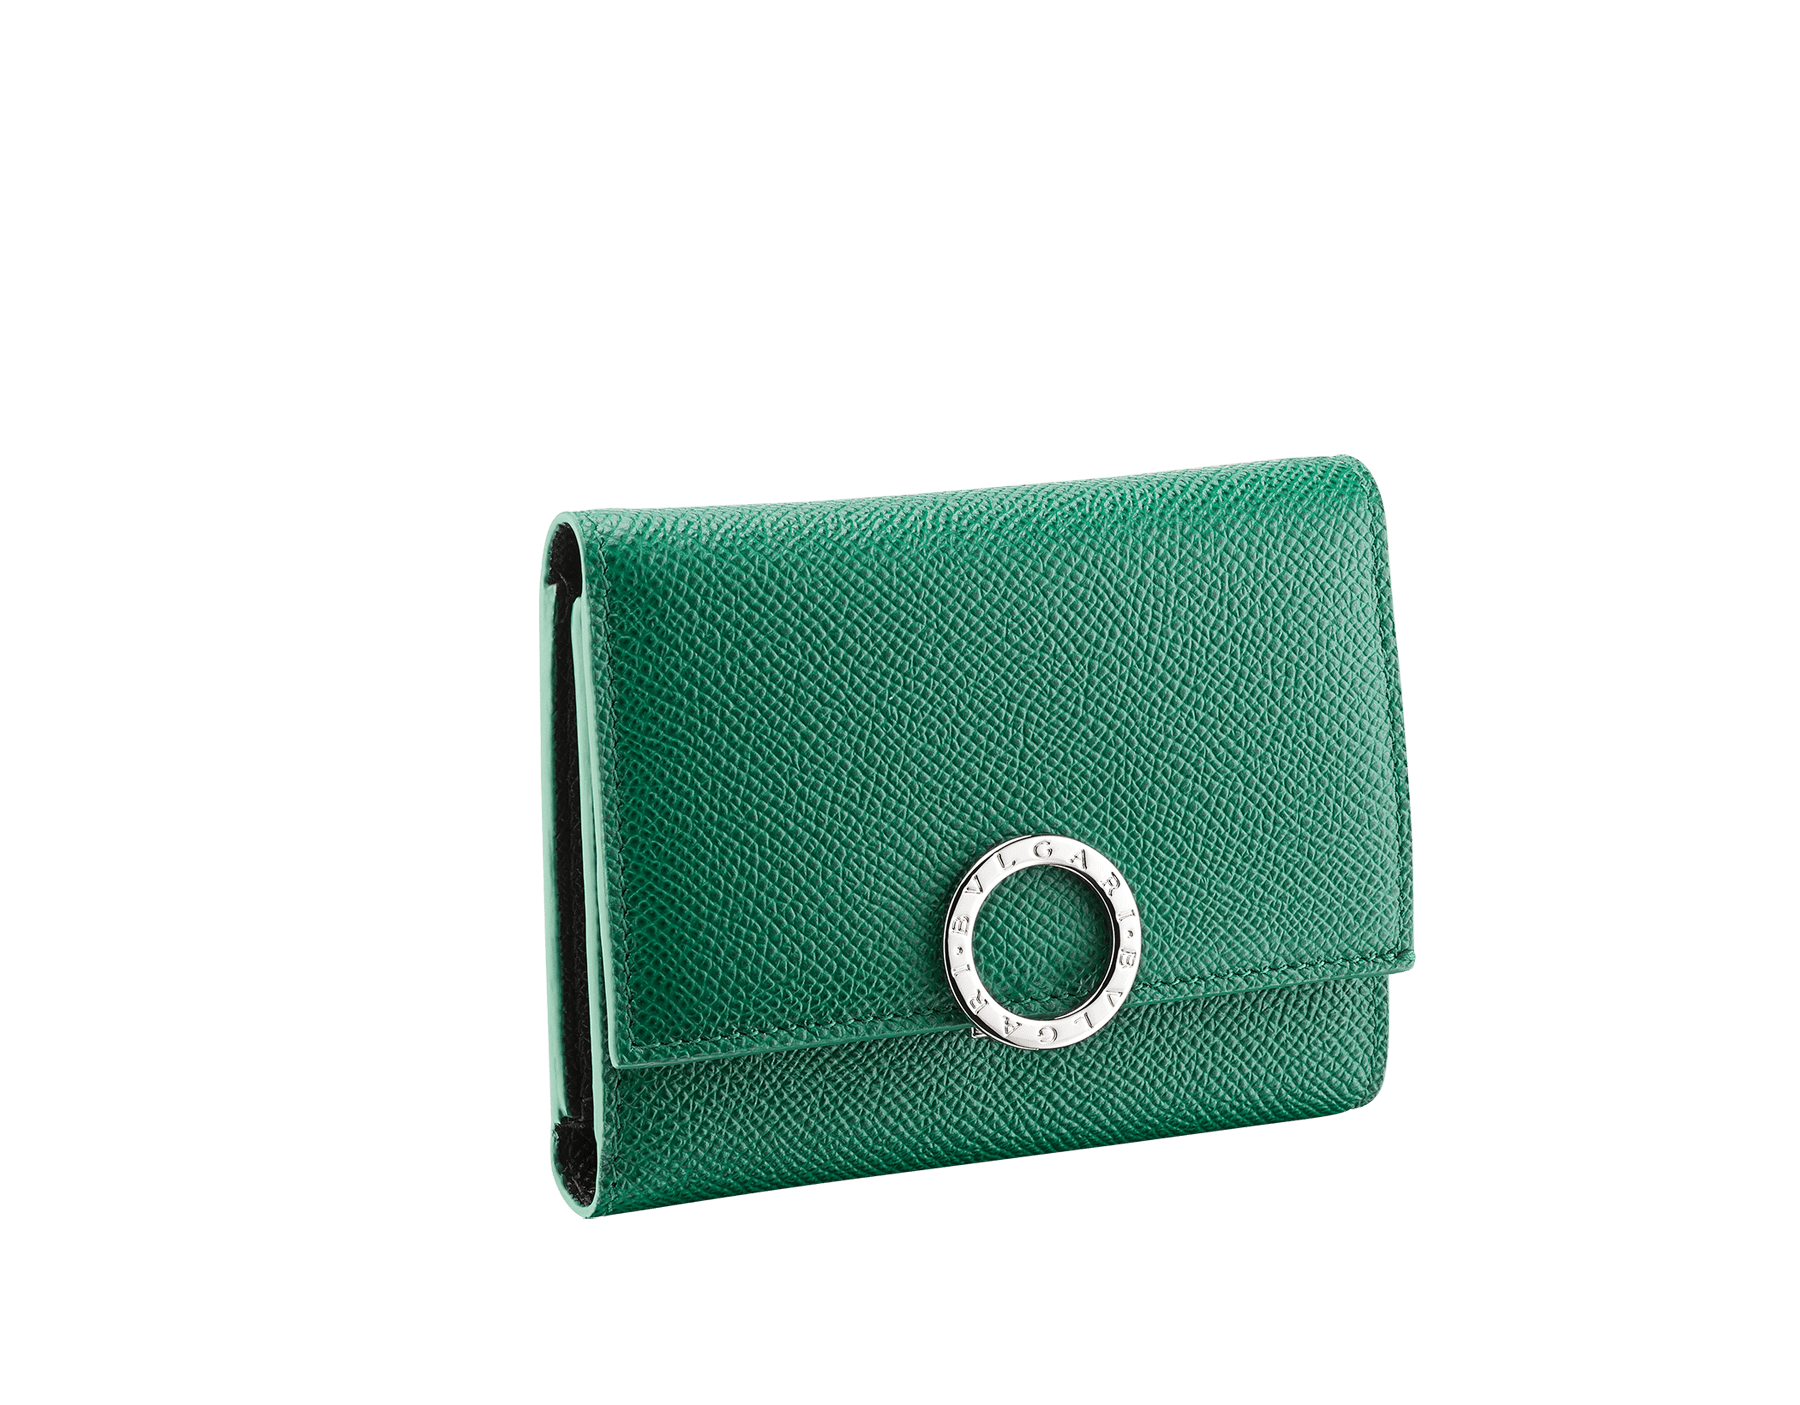 BVLGARI BVLGARI compact wallet for men in emerald green and black grain calf leather. Iconic logo closure clip in palladium-plated brass. BCM-YENCOMPACT image 1